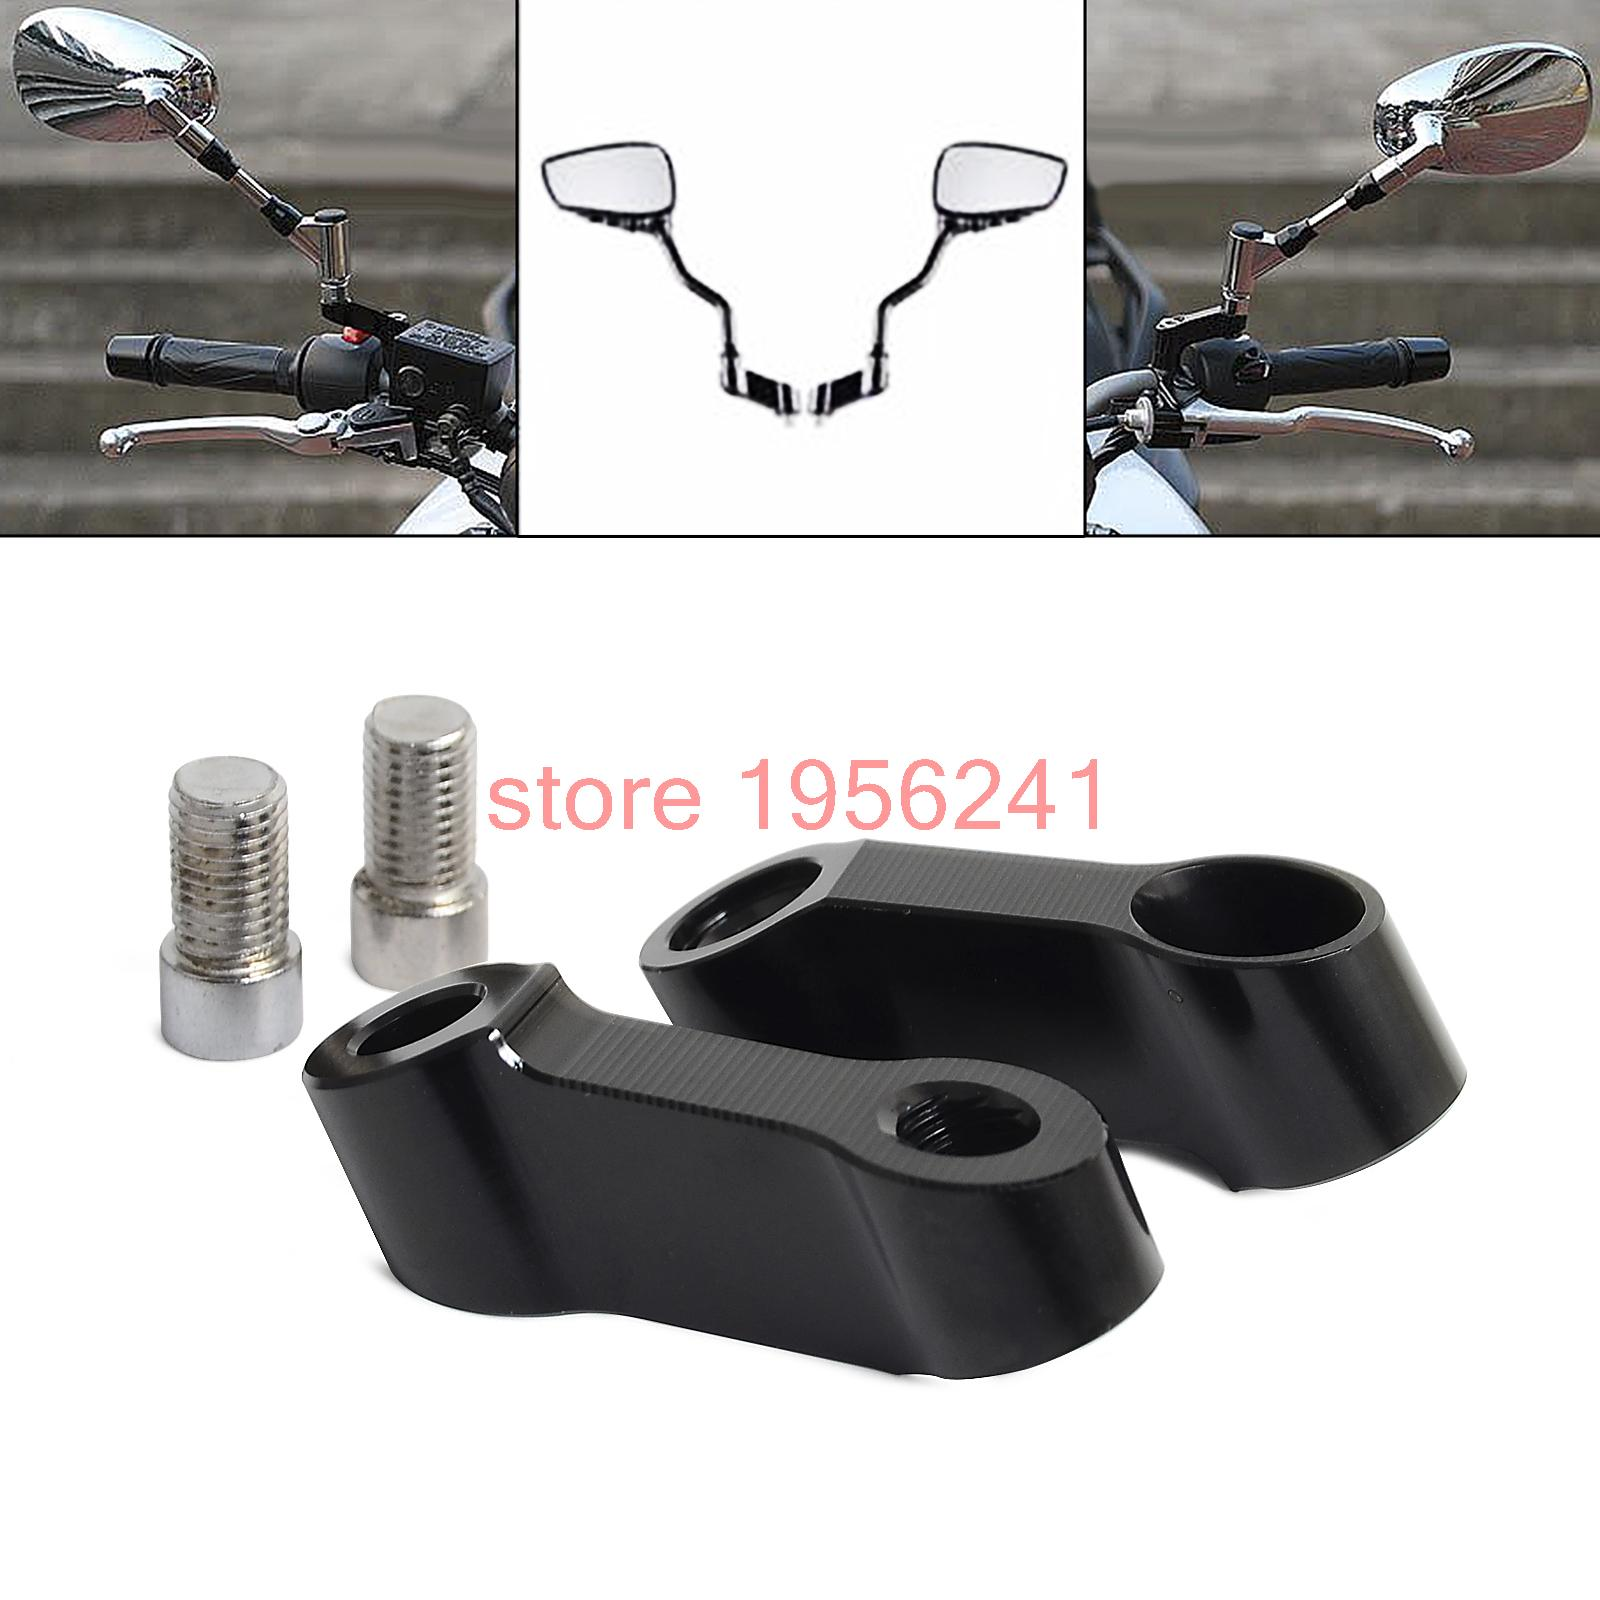 Black Bolts Size 10mm Mirrors Extension Riser Extend Adapter For BMW F650GS F700GS F800GS S1000R R1200R R1200GS K1200R HP2 zoomer ruckus fi nps50 black engine frame extend extension kit with handle post